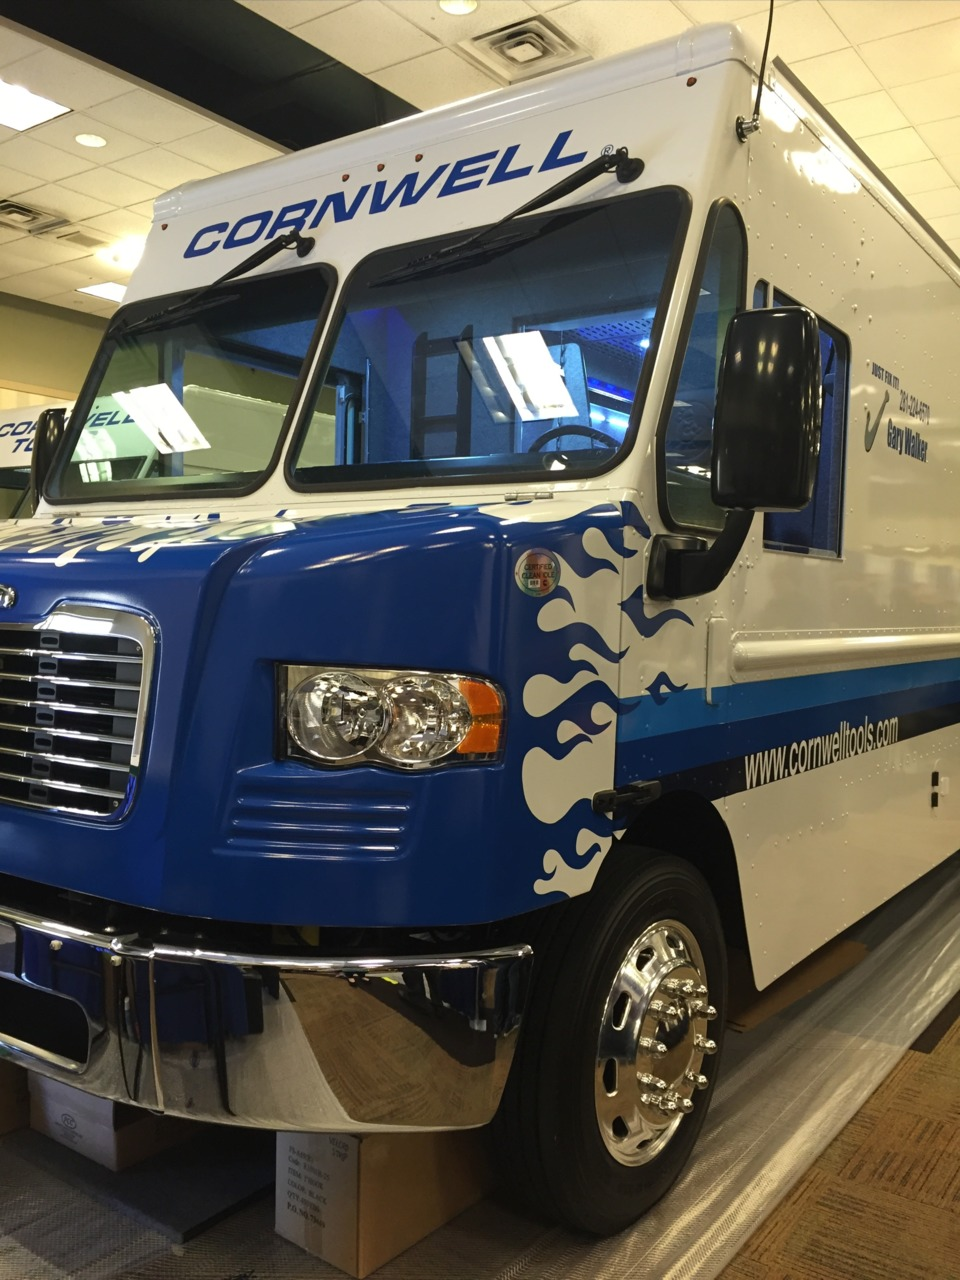 cornwell tools truck. the entrance to 2016 cornwell tools national rally in dallas, texas. truck